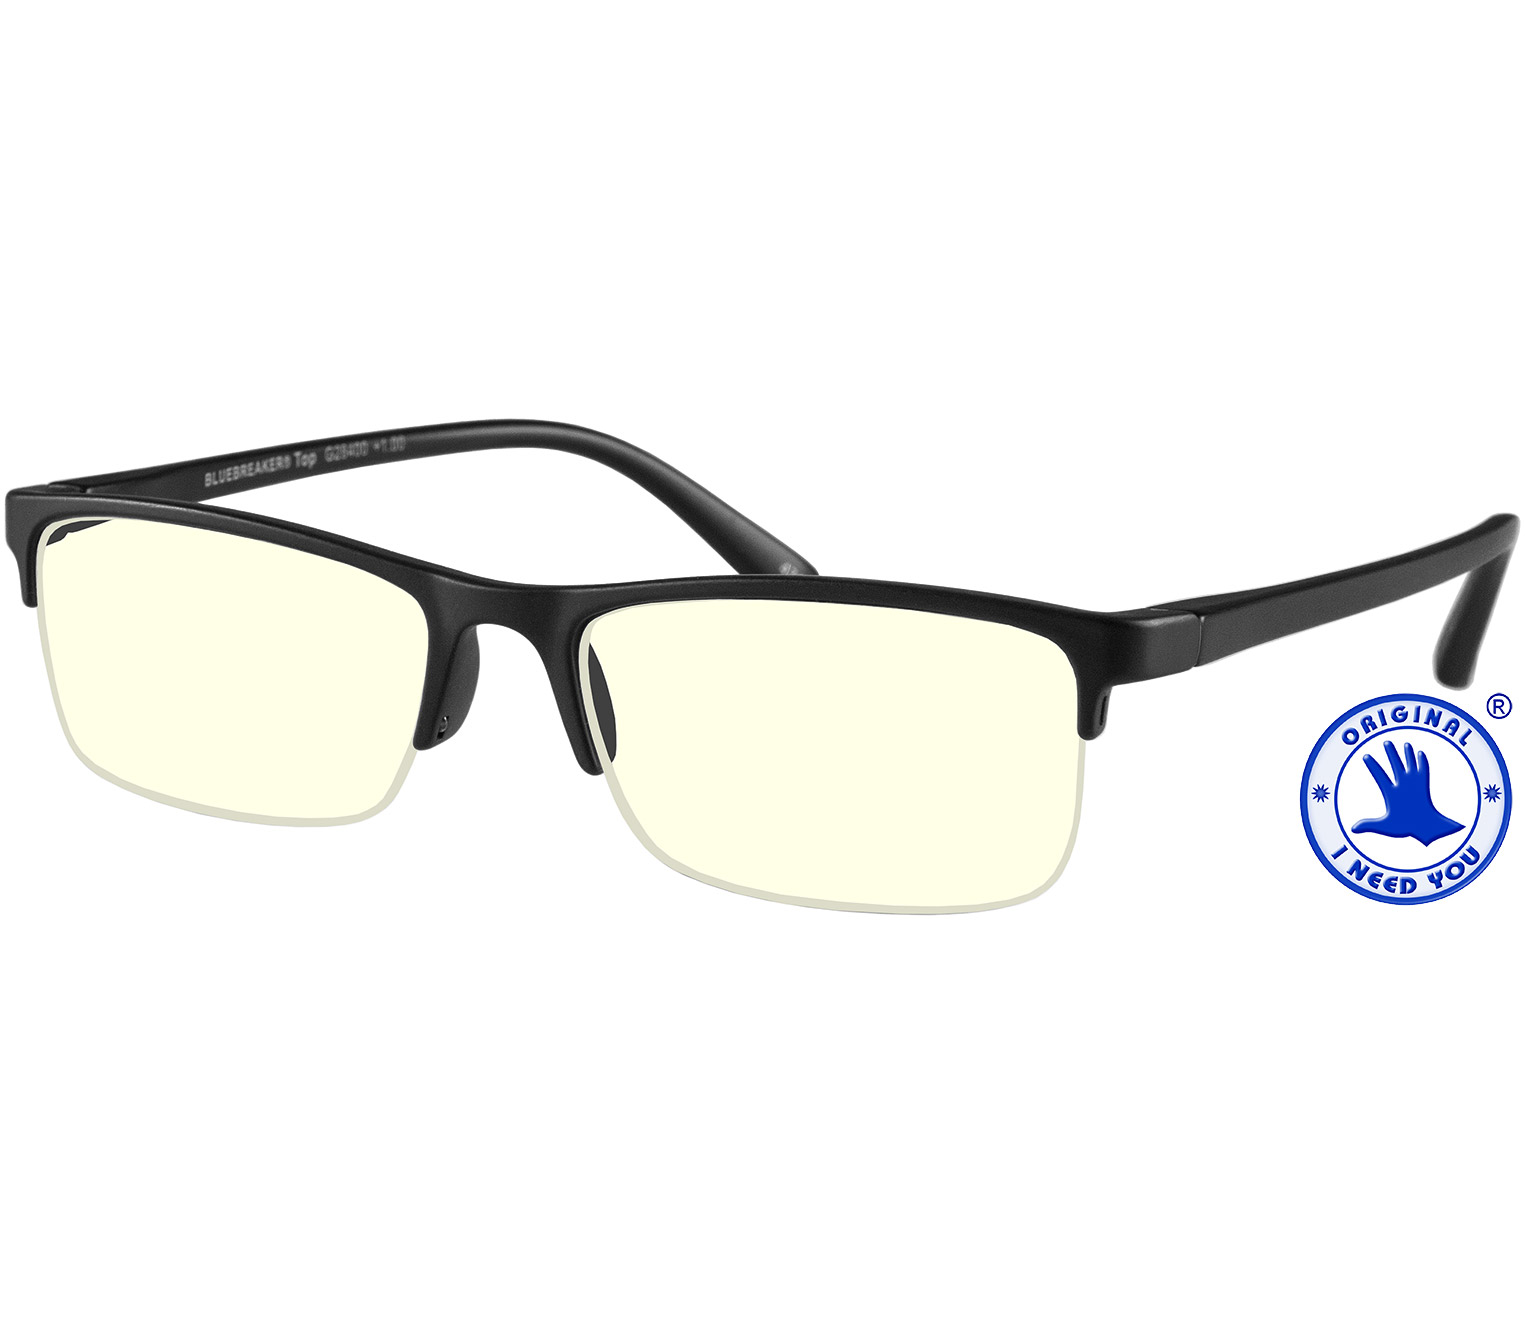 Main Image (Angle) - Sonar (Black) Blue Light Glasses Reading Glasses